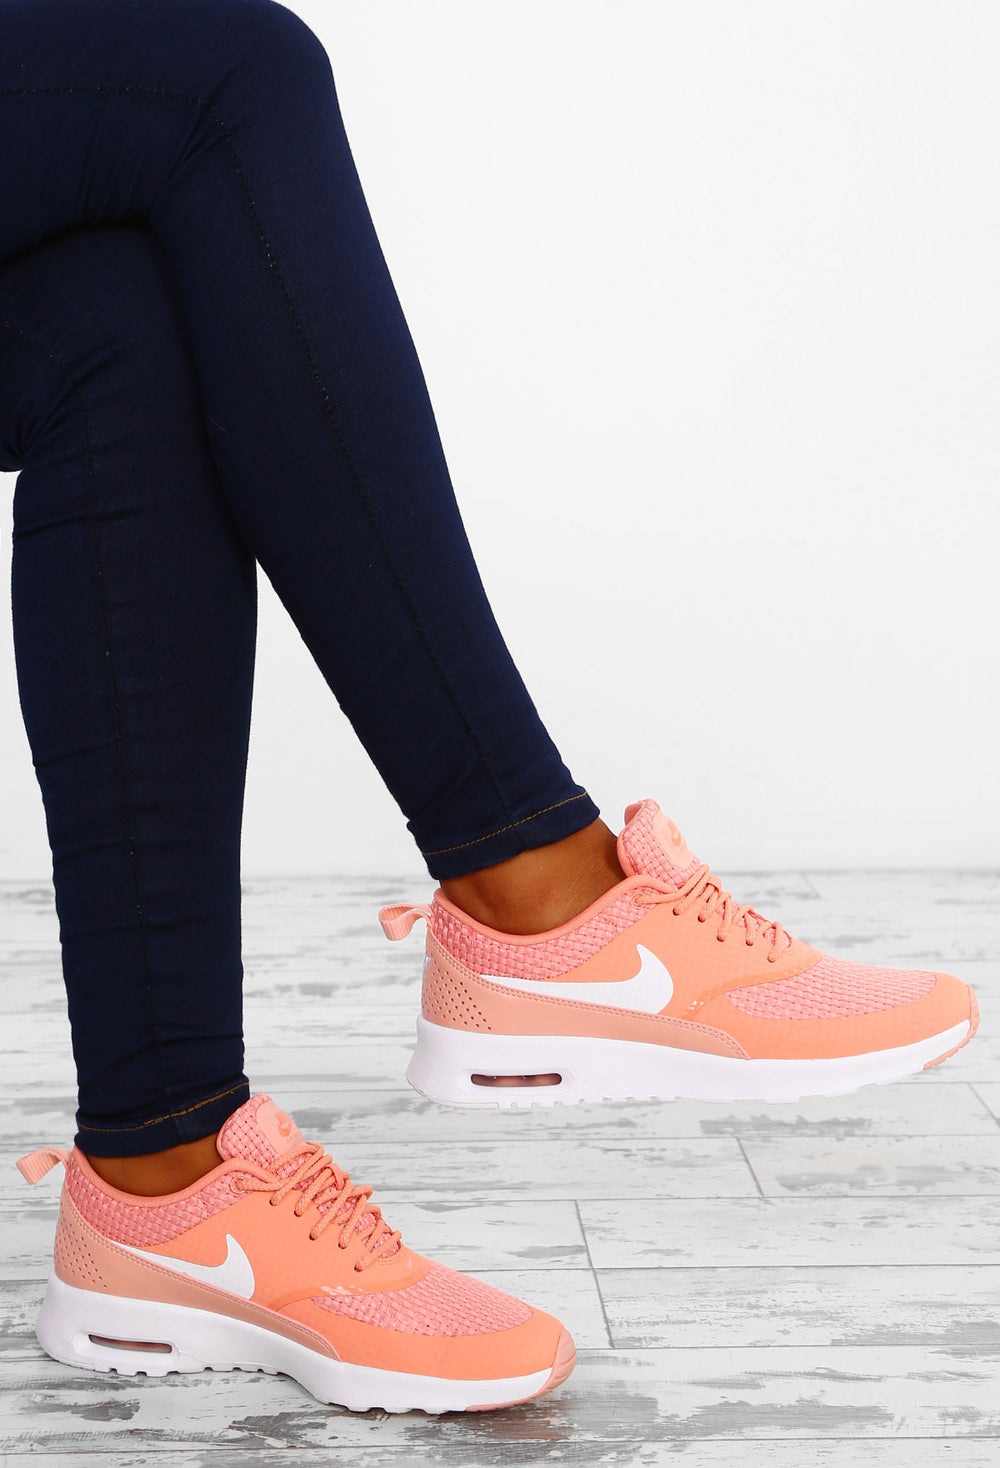 heiß Nike Air Max Thea Crimson Bliss Trainers </p>